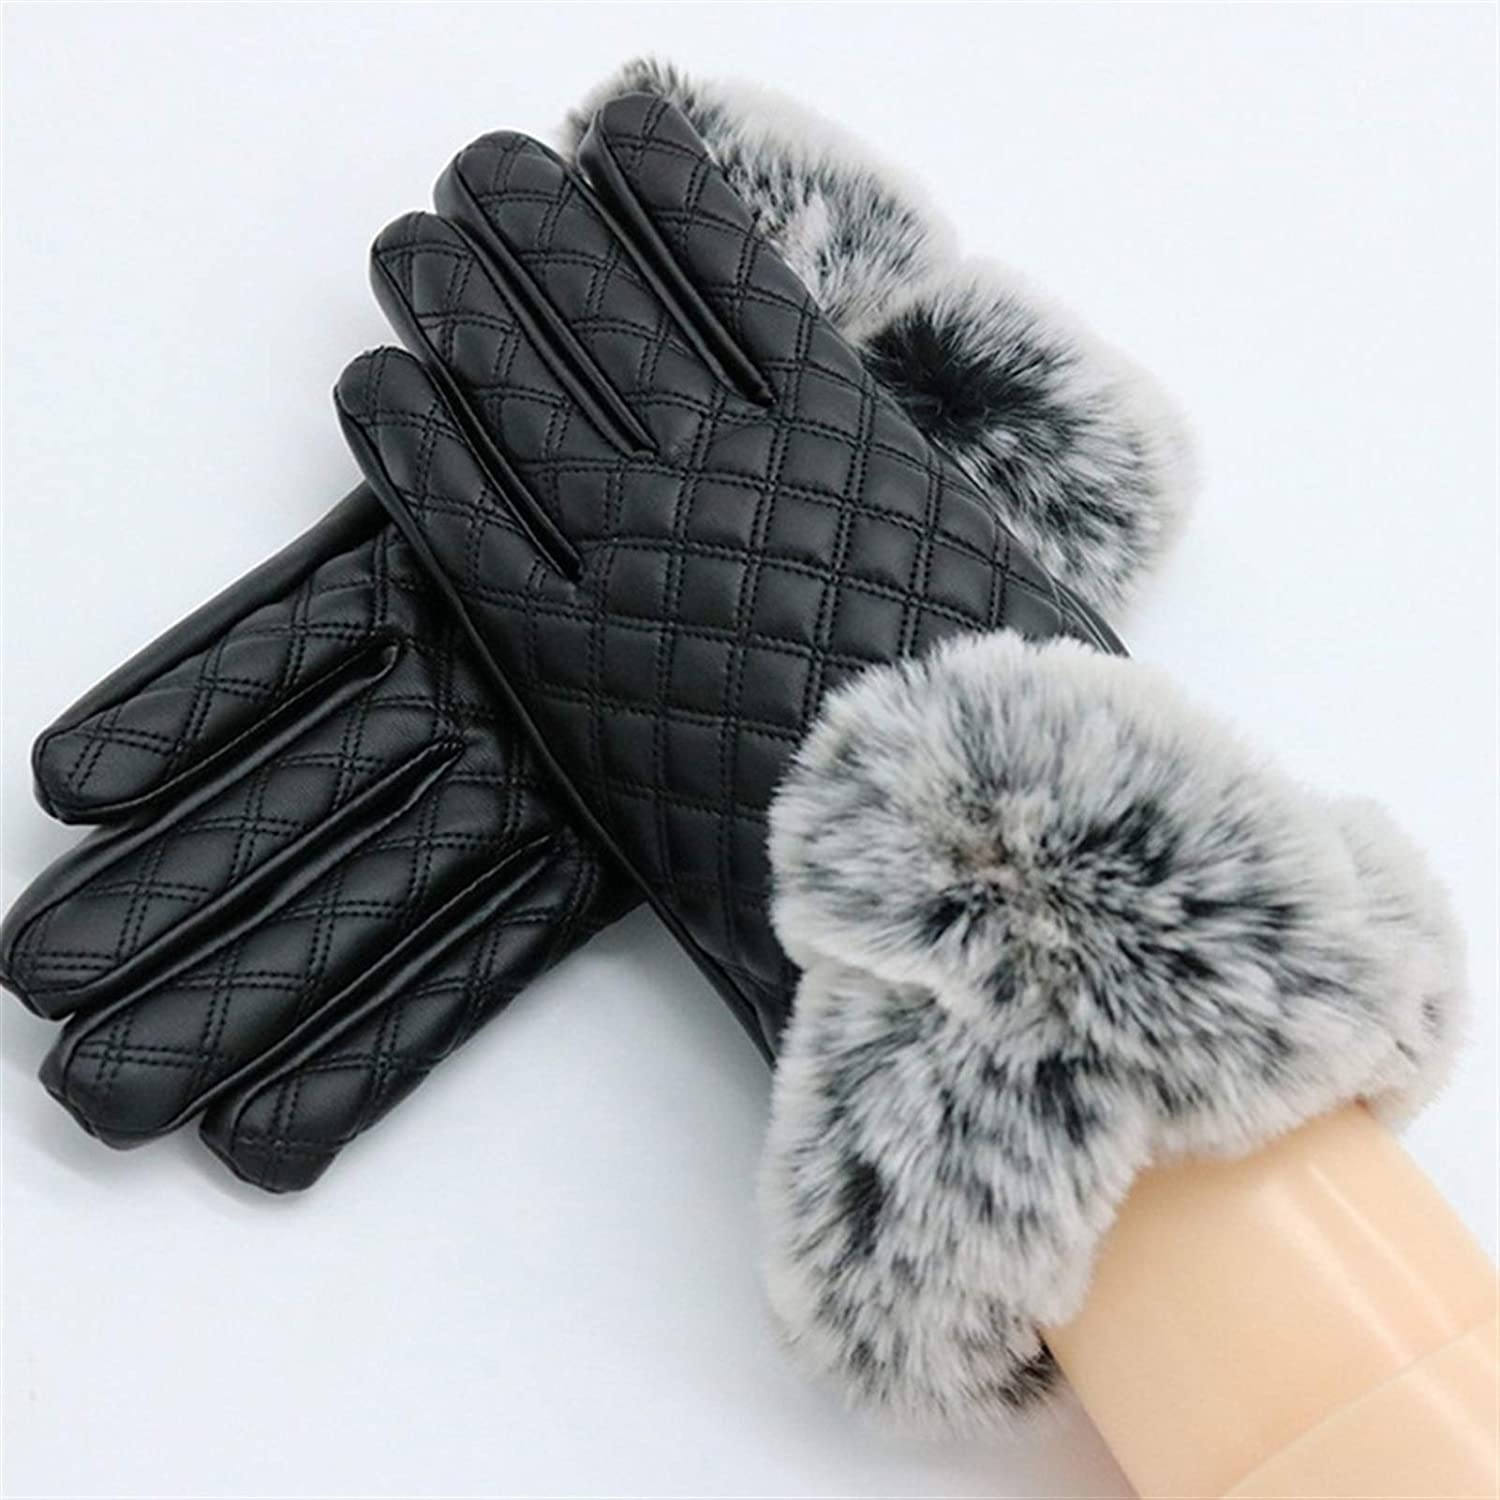 DZHT Women Touch Screen Gloves PU Leather Female Waterproof Thick Gloves Red Black Warm Spring Winter Gloves (Color : 3)